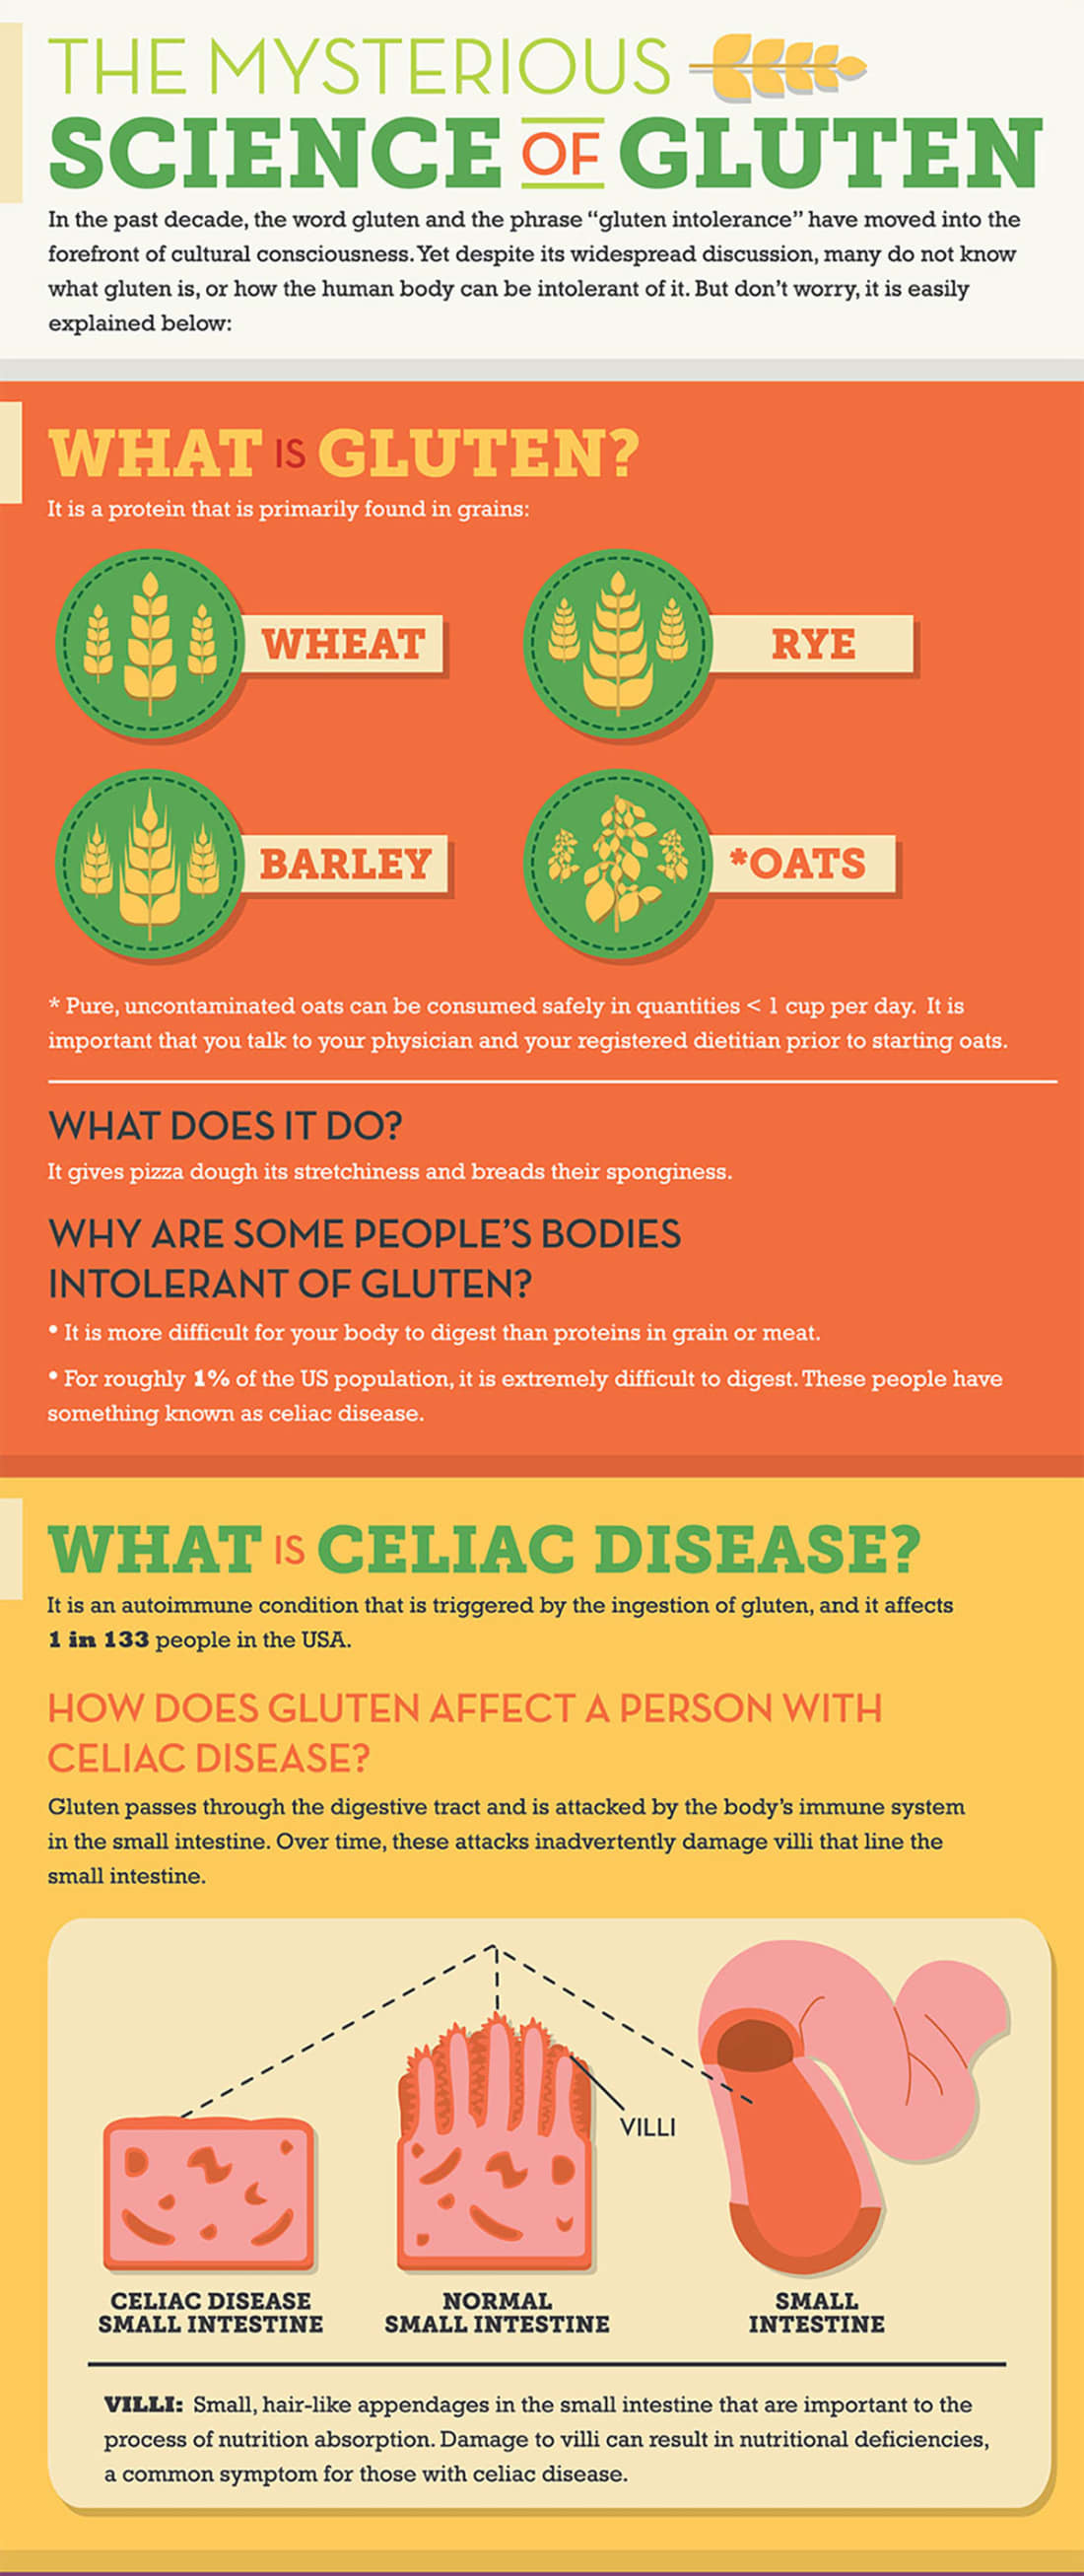 Gluten, Dairy and Eggs